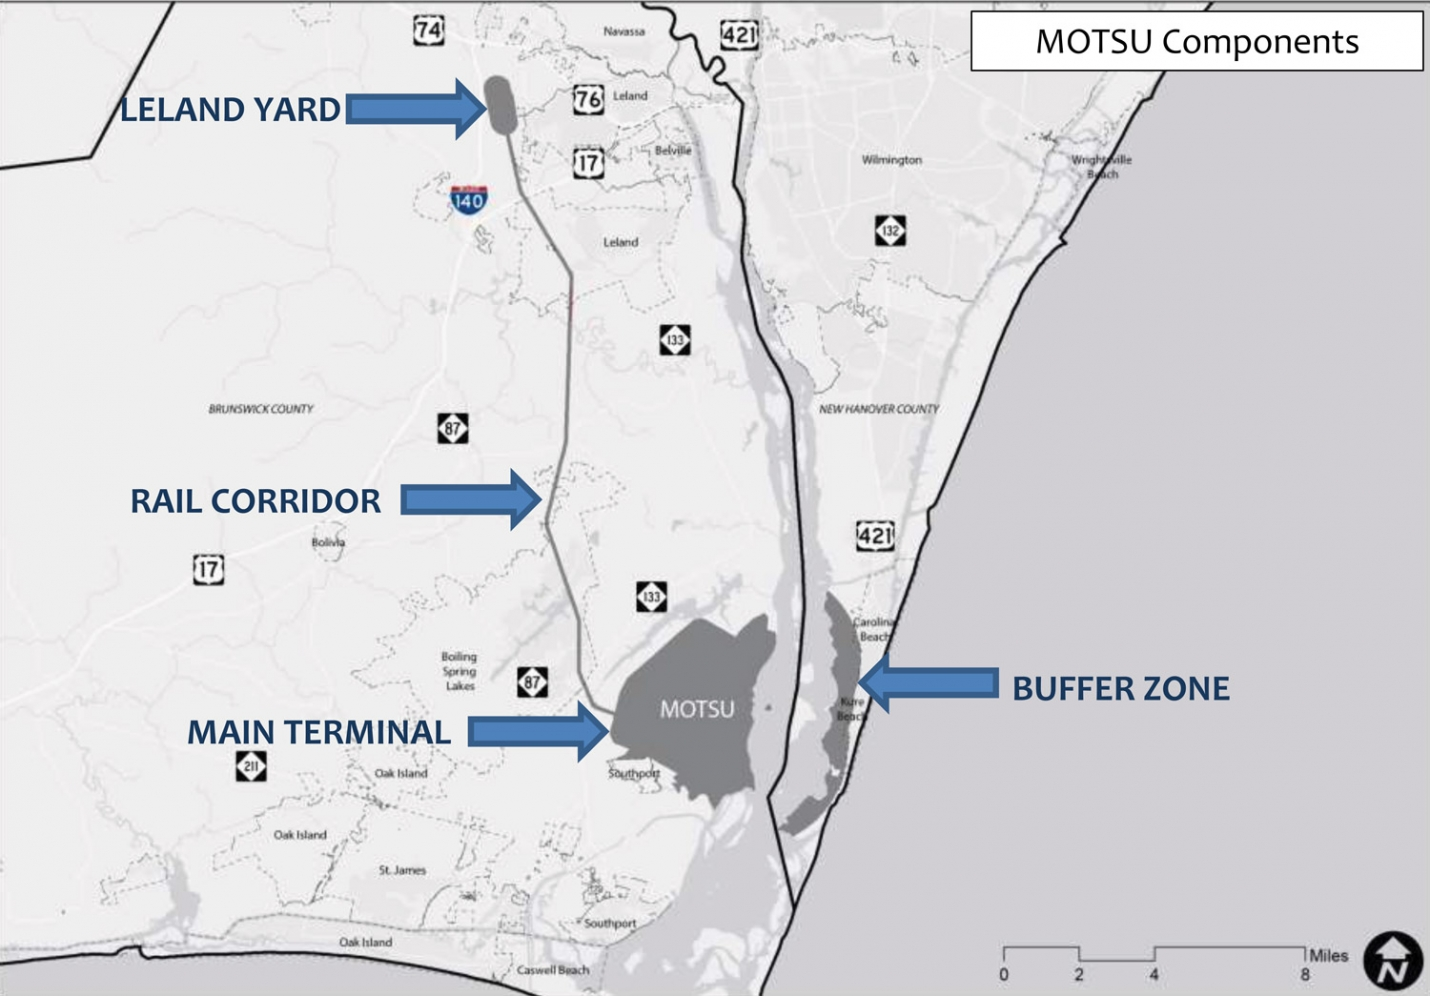 The Cape Fear Council of Governments (CFCOG) is preparing a Joint Land Use Study (JLUS) in conjunction with Military Ocean Terminal Sunny Point (MOTSU) and area local governments including the Towns of Carolina Beach, Kure Beach, New Hanover County and others. A public meeting will be held on July 30th, at the Carolina Beach Town Hall as part of that land-use planning process.